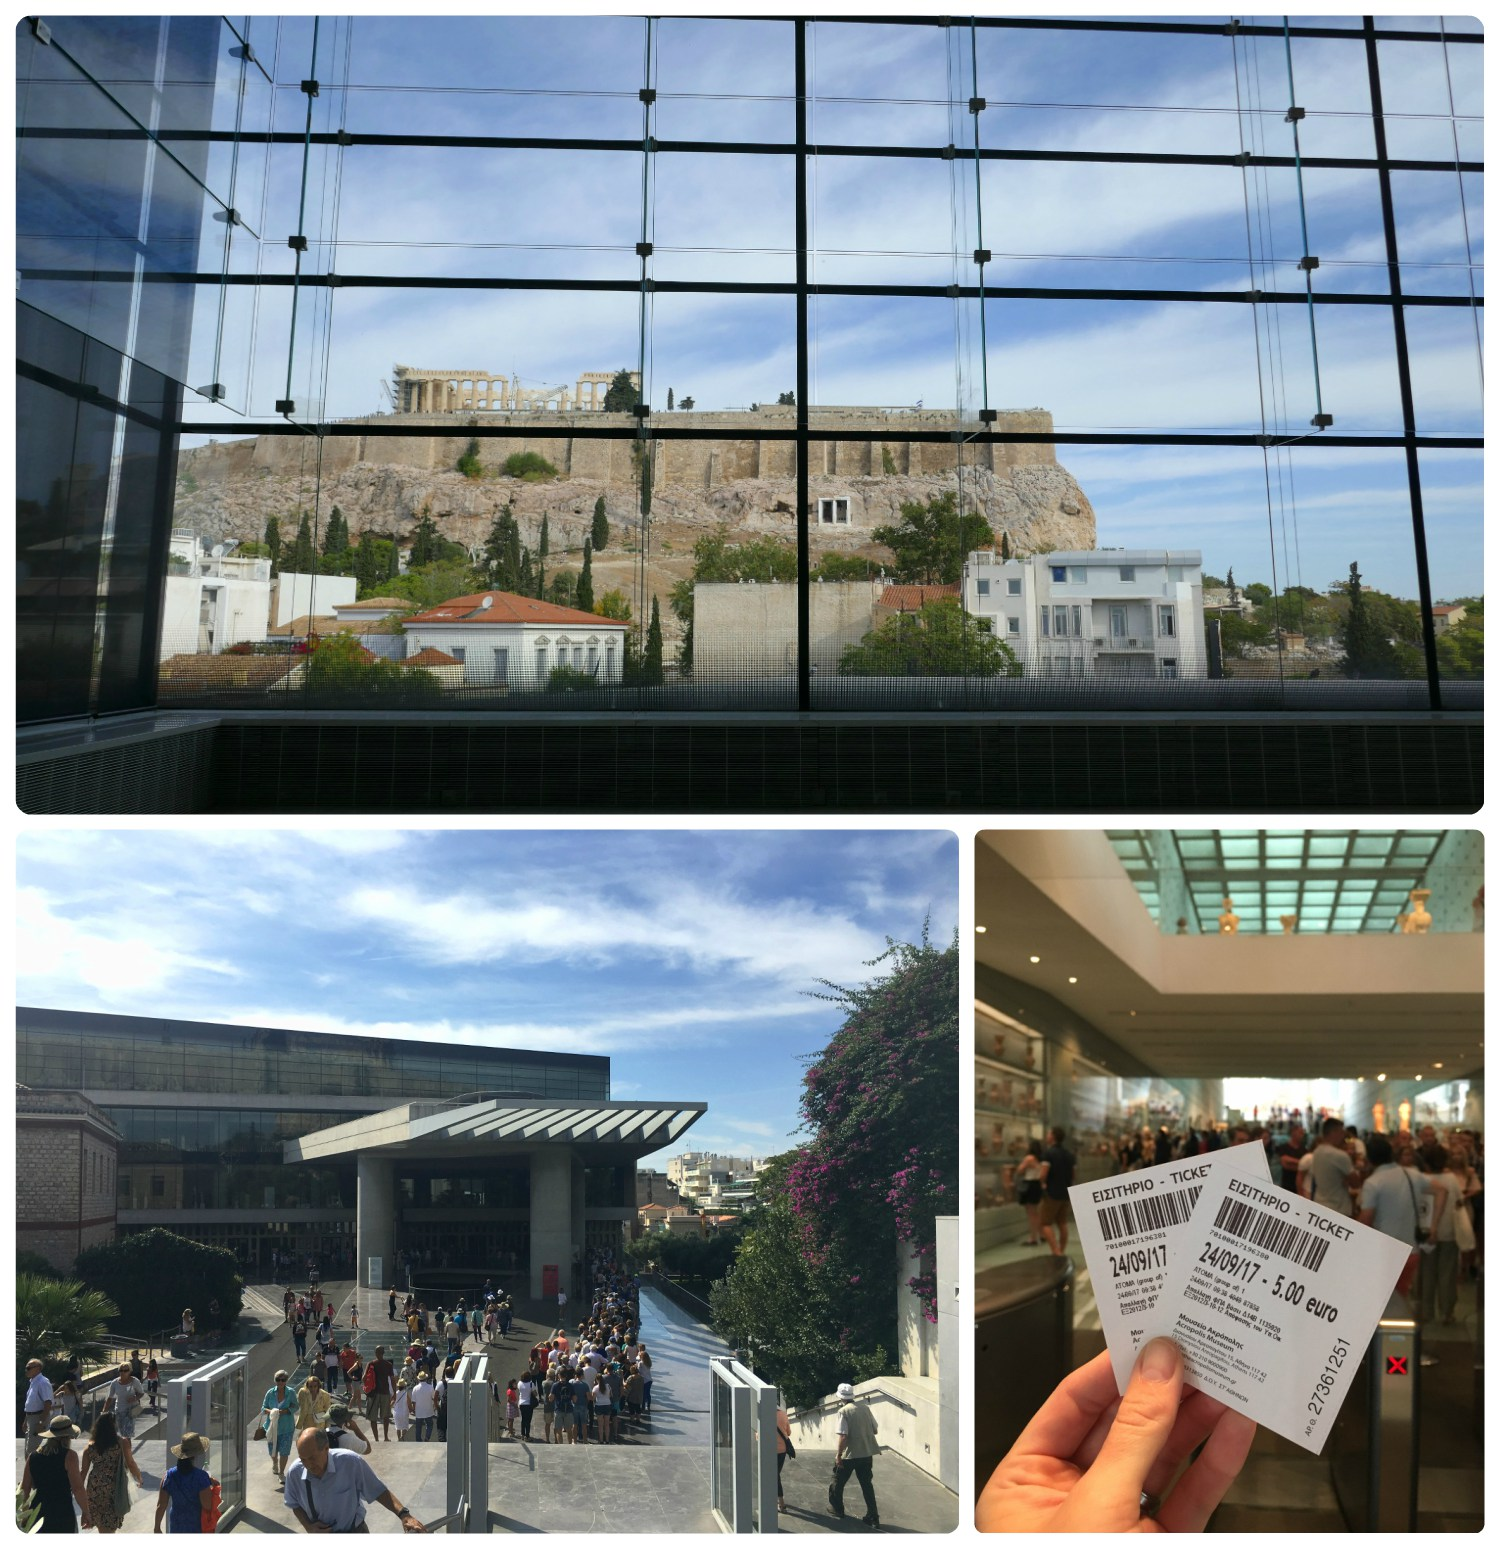 The view from the panoramic windows of the Acropolis Museum athens aren't only spectacular, but a perfect backdrop for the ancient treasures on display. All of this for just 5 Euros sure draws a crowd. We arrived early in the morning and avoided the line we saw when passing by the museum later in the afternoon.